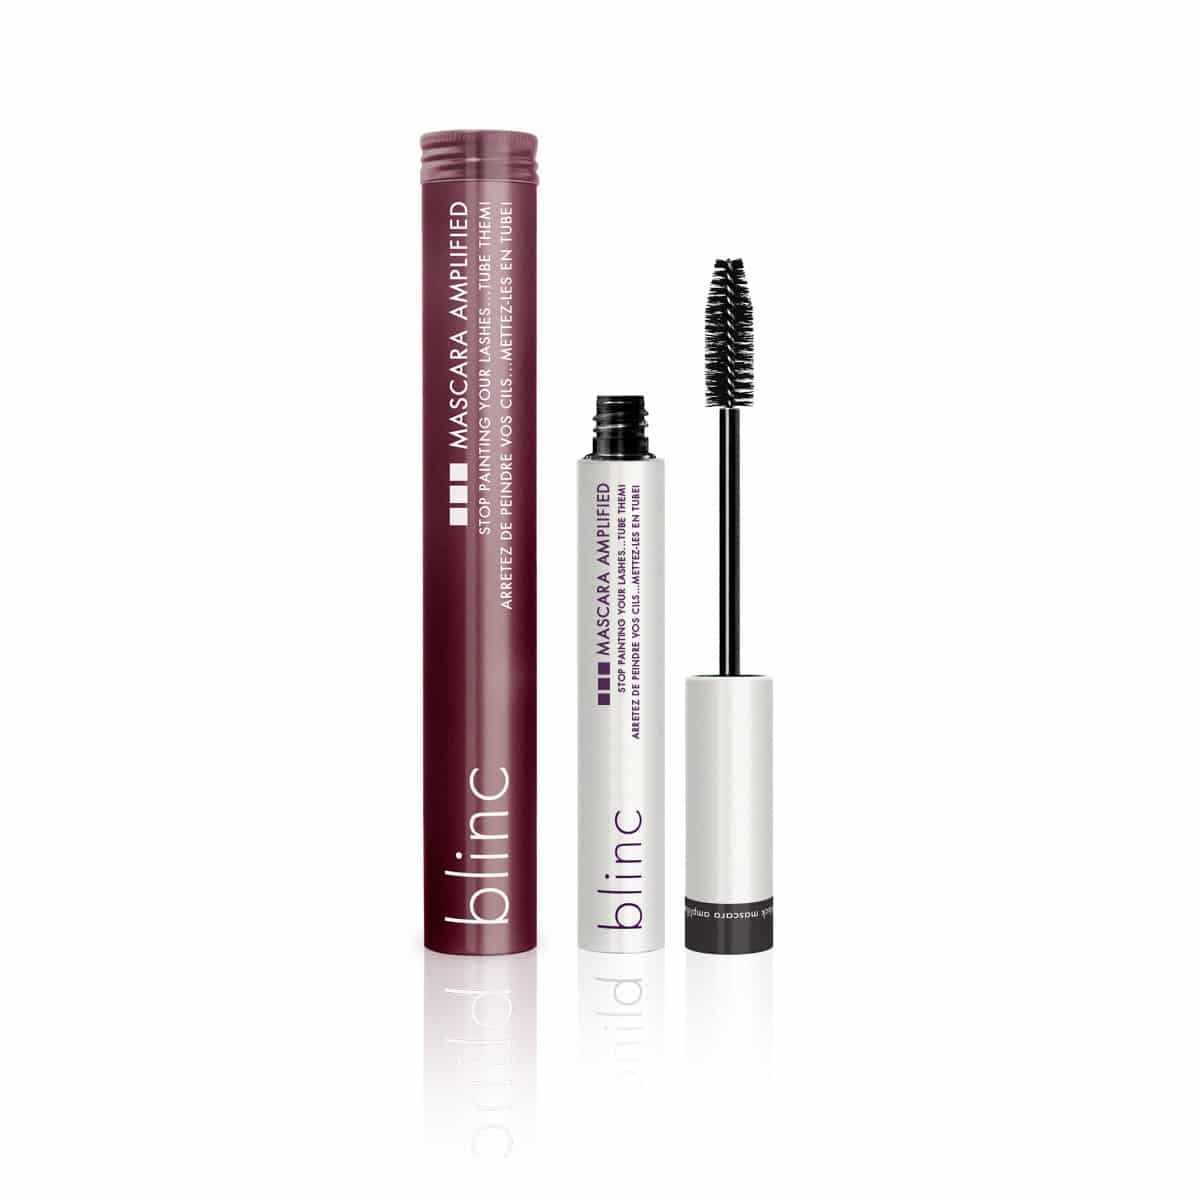 Blinc Mascara Amplified - The Beauty Lounge